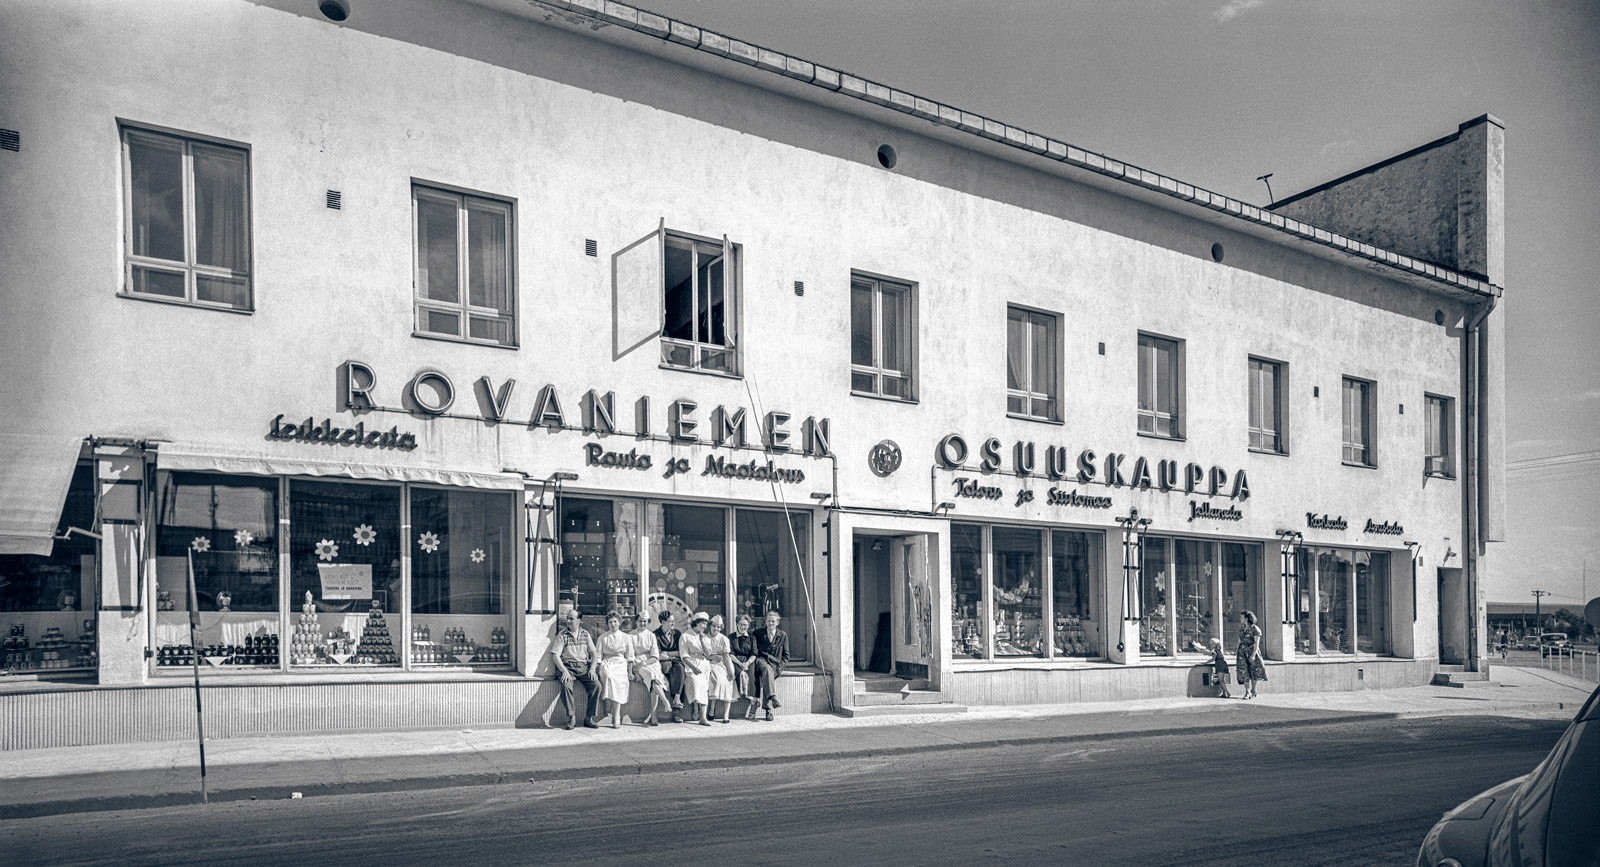 The Rovaniemen Osuuskauppa co-operative shop from the entrance to Haawe in 1957